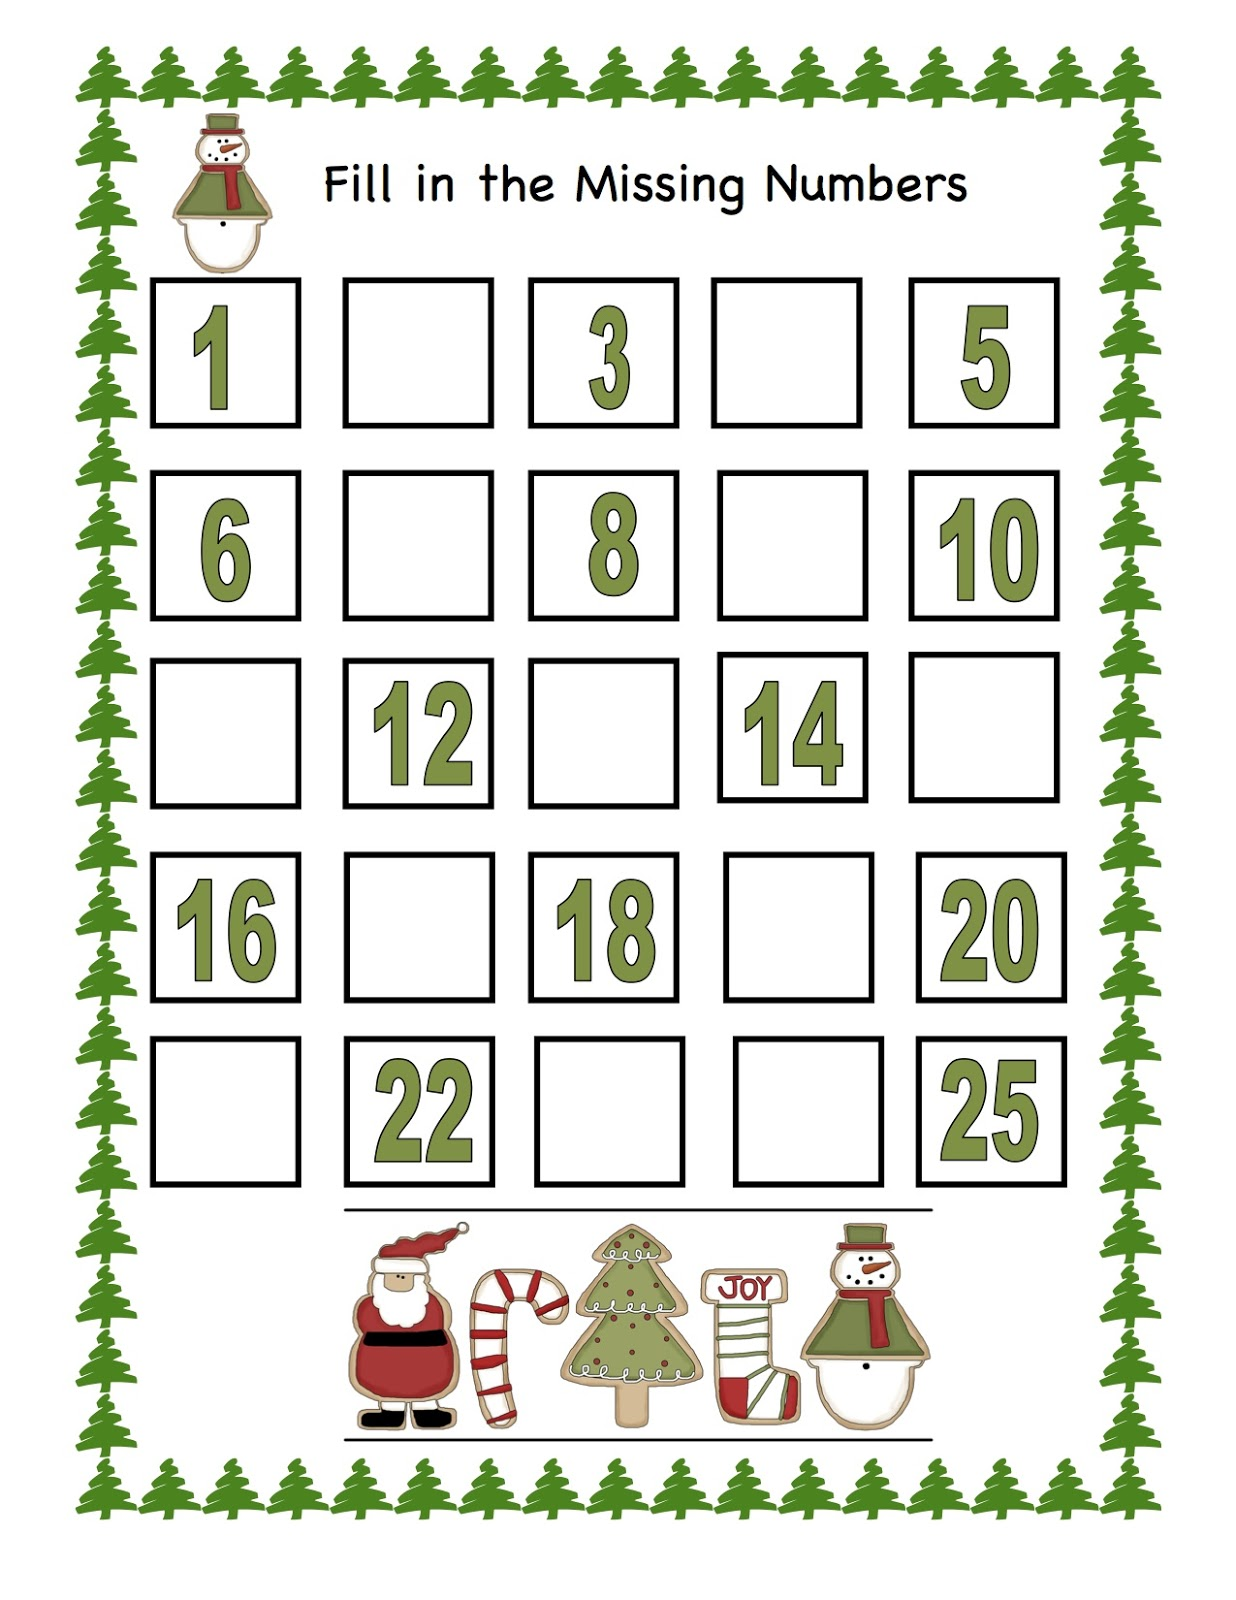 Number 25 pictures printable number 25 - Filename Cookie X Mas Num 1 25 Boxes Jpg